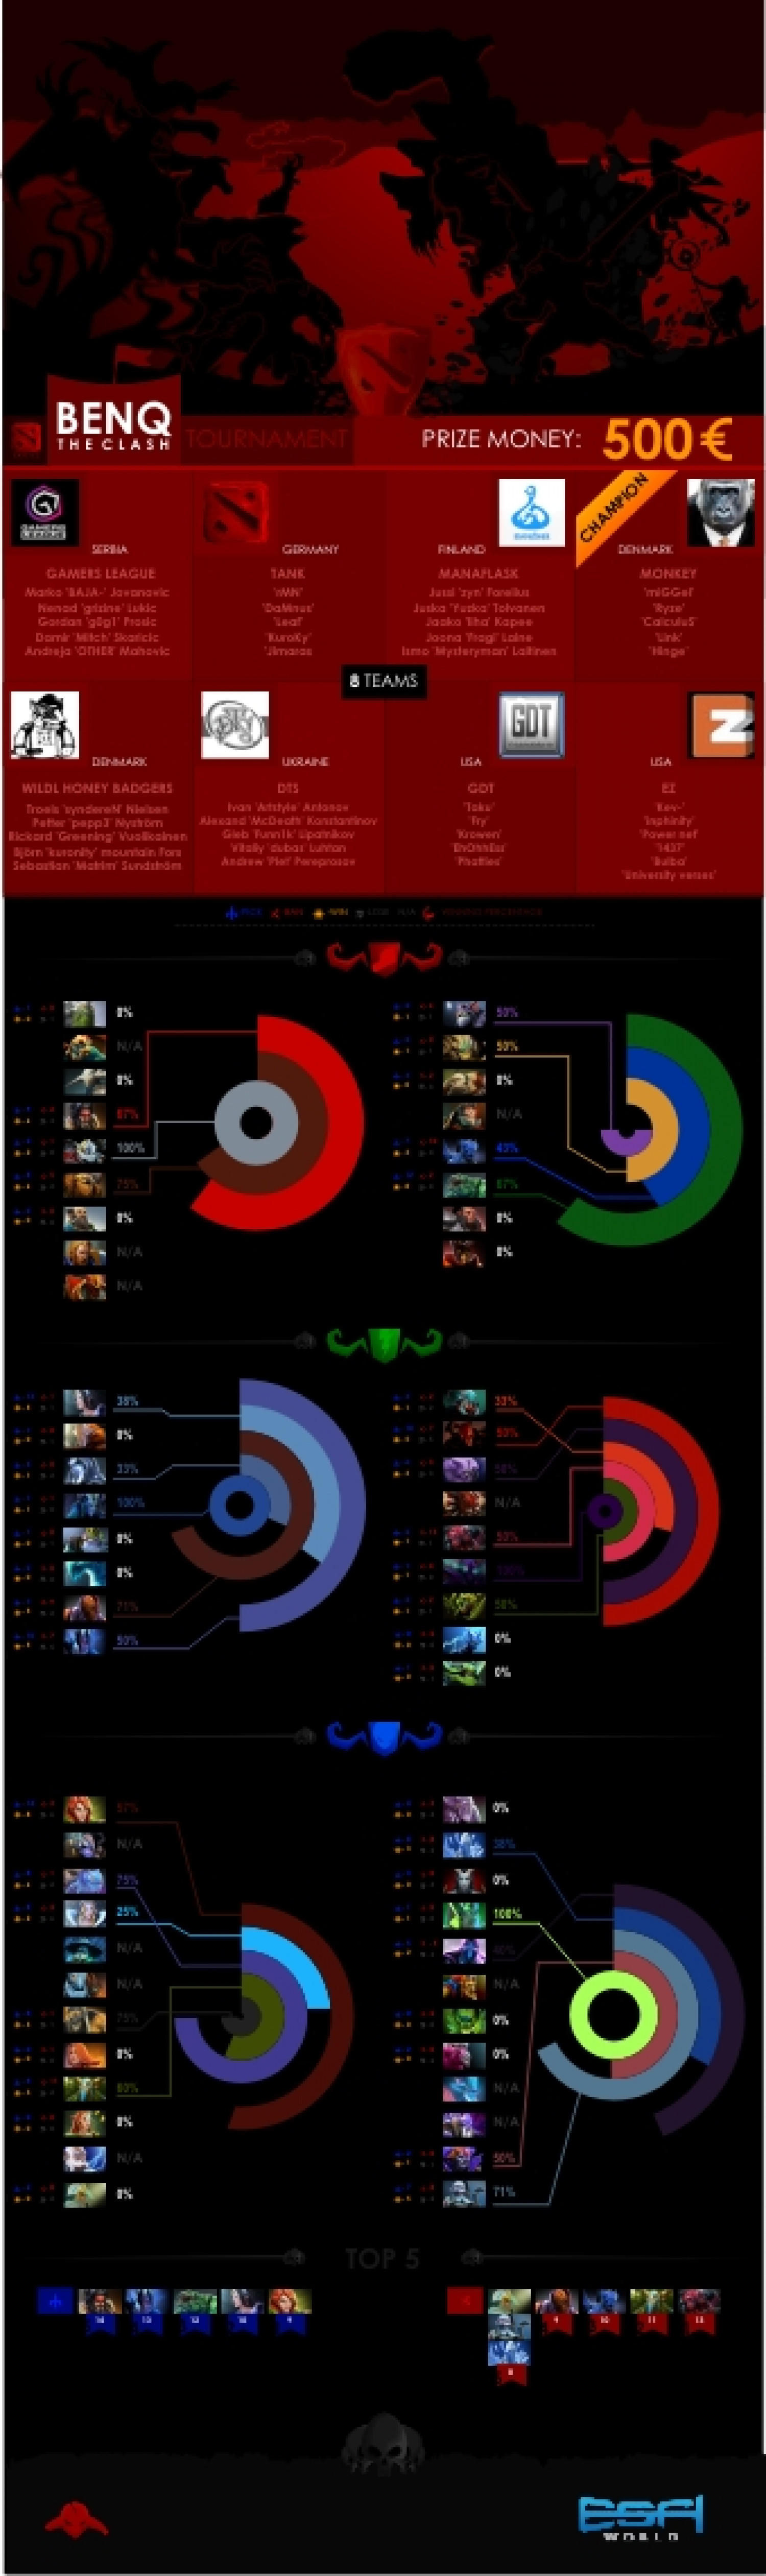 BENQ Dota 2 Tournament Infographic